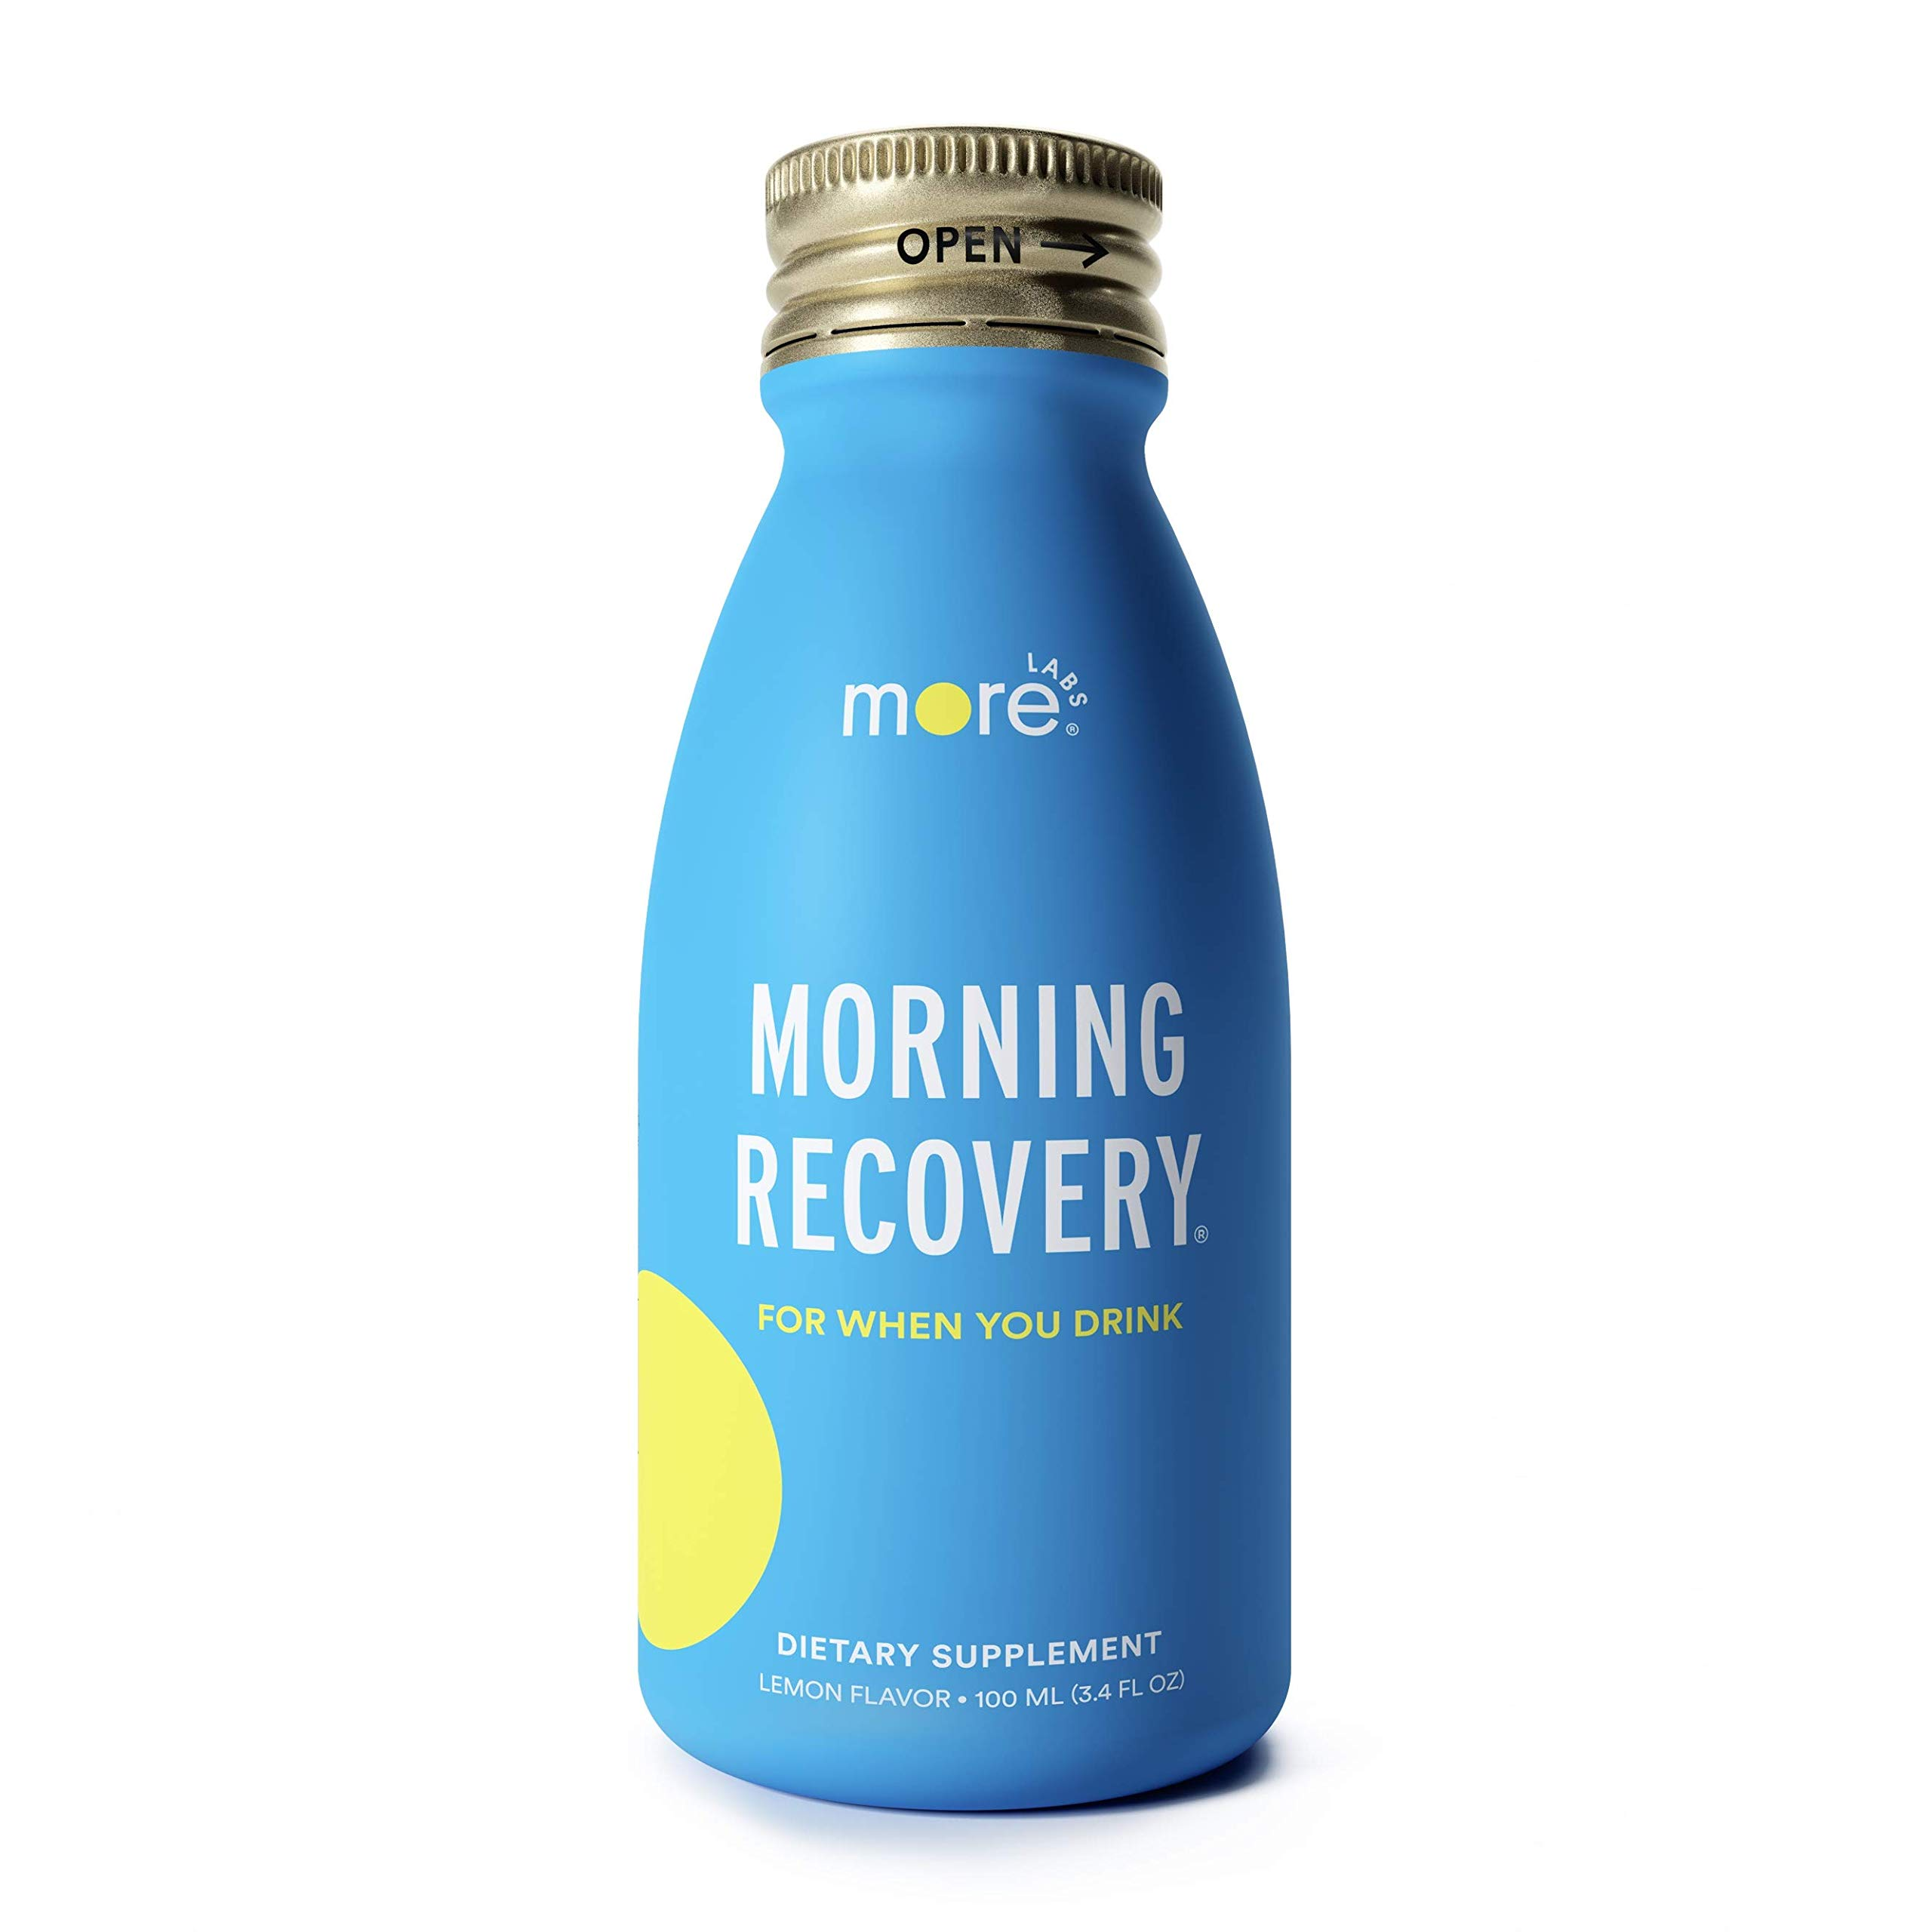 Morning Recovery: Patent-Pending Hangover Prevention Drink (Pack of 6) - New & Improved Original Lemon Flavor - Highly Bioavailable Liquid DHM, Milk Thistle, Electrolytes - No Artificial Flavors by Morning Recovery